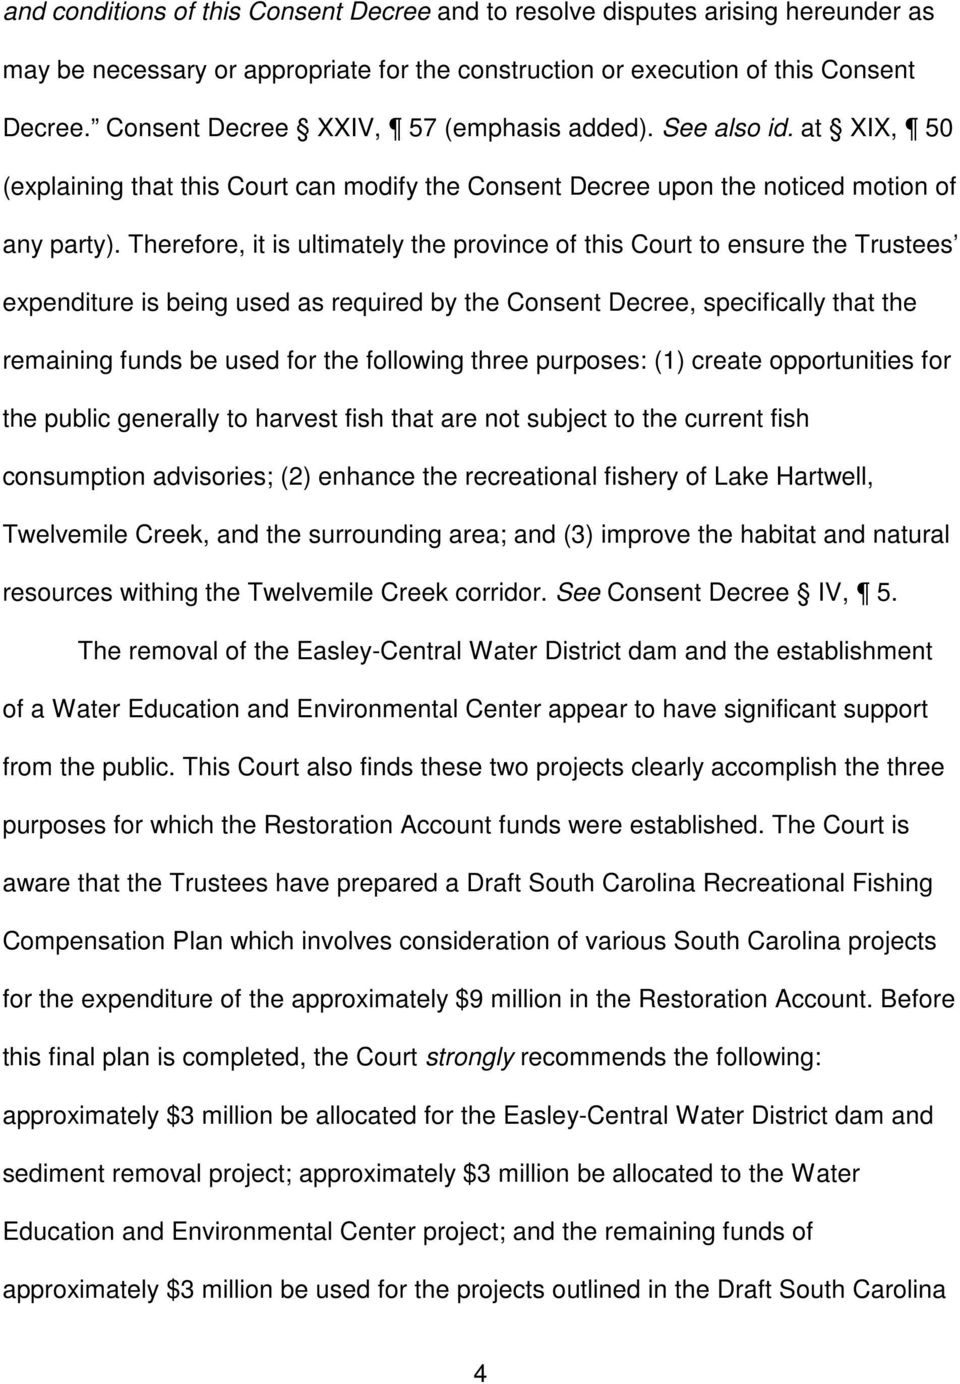 Therefore, it is ultimately the province of this Court to ensure the Trustees expenditure is being used as required by the Consent Decree, specifically that the remaining funds be used for the